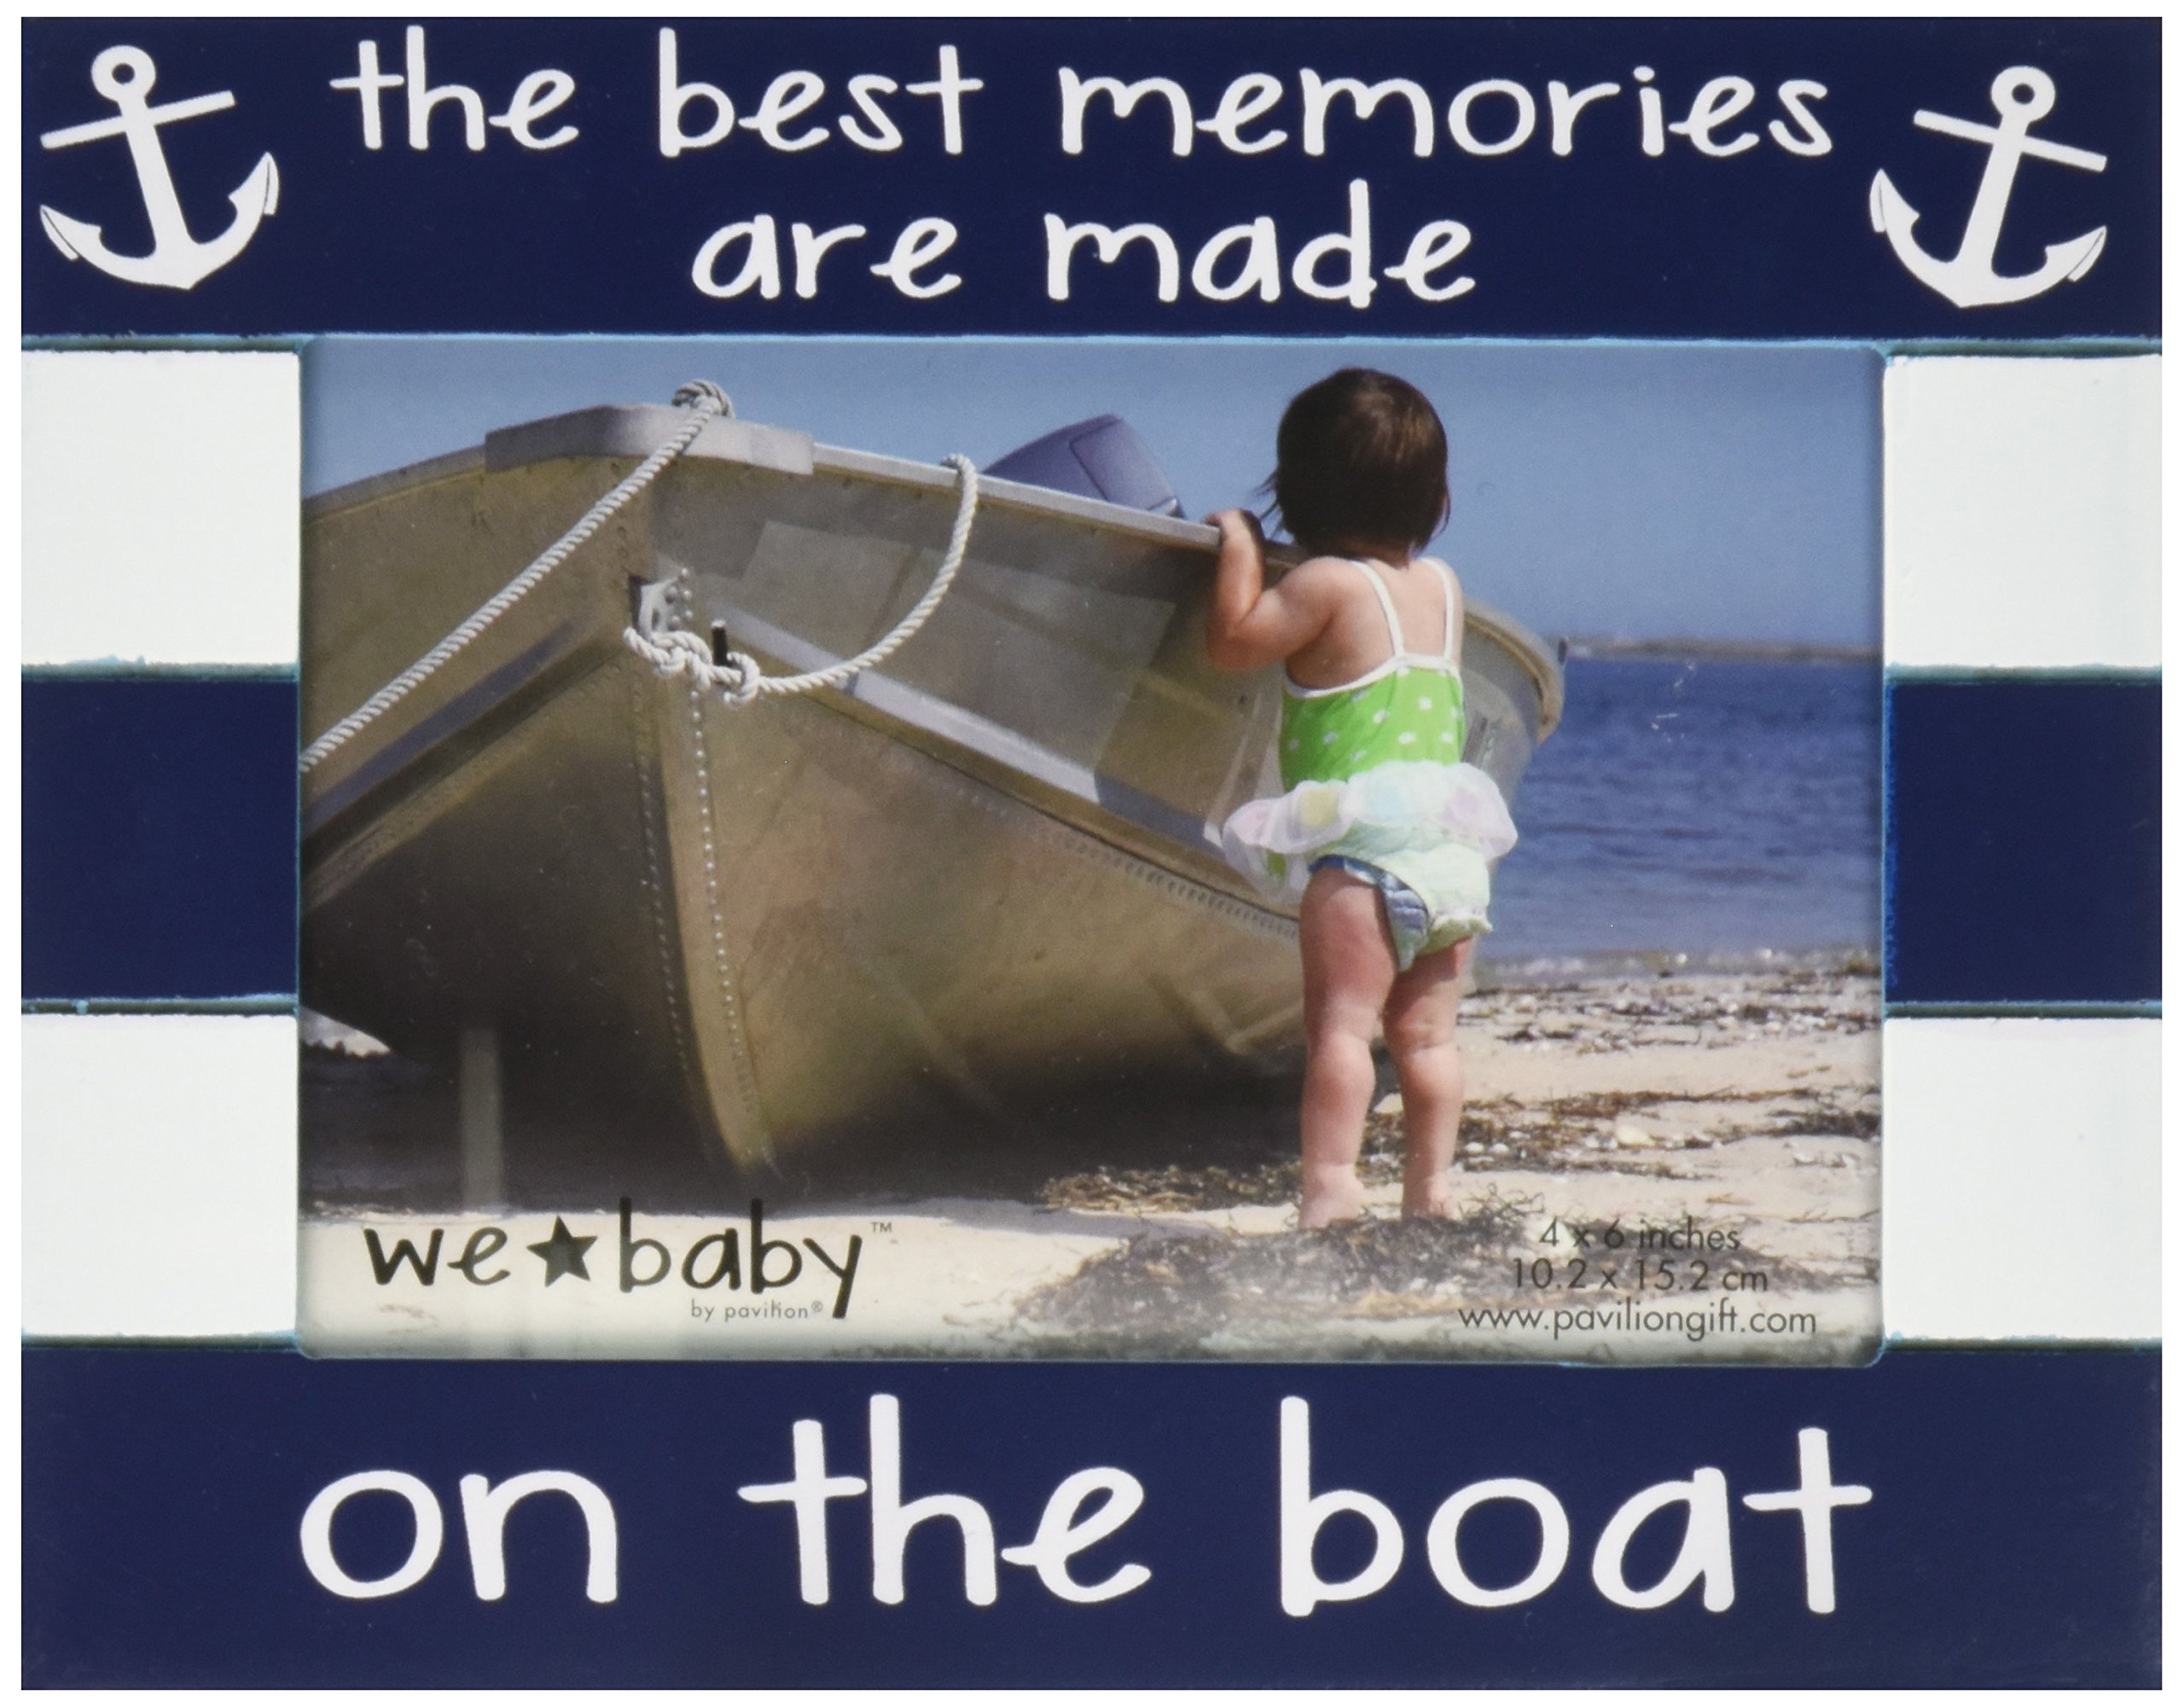 Pavilion Gift Company We Baby The Best Memories are made sulla barca cornice, 15,2 x 10,2 cm, Dark